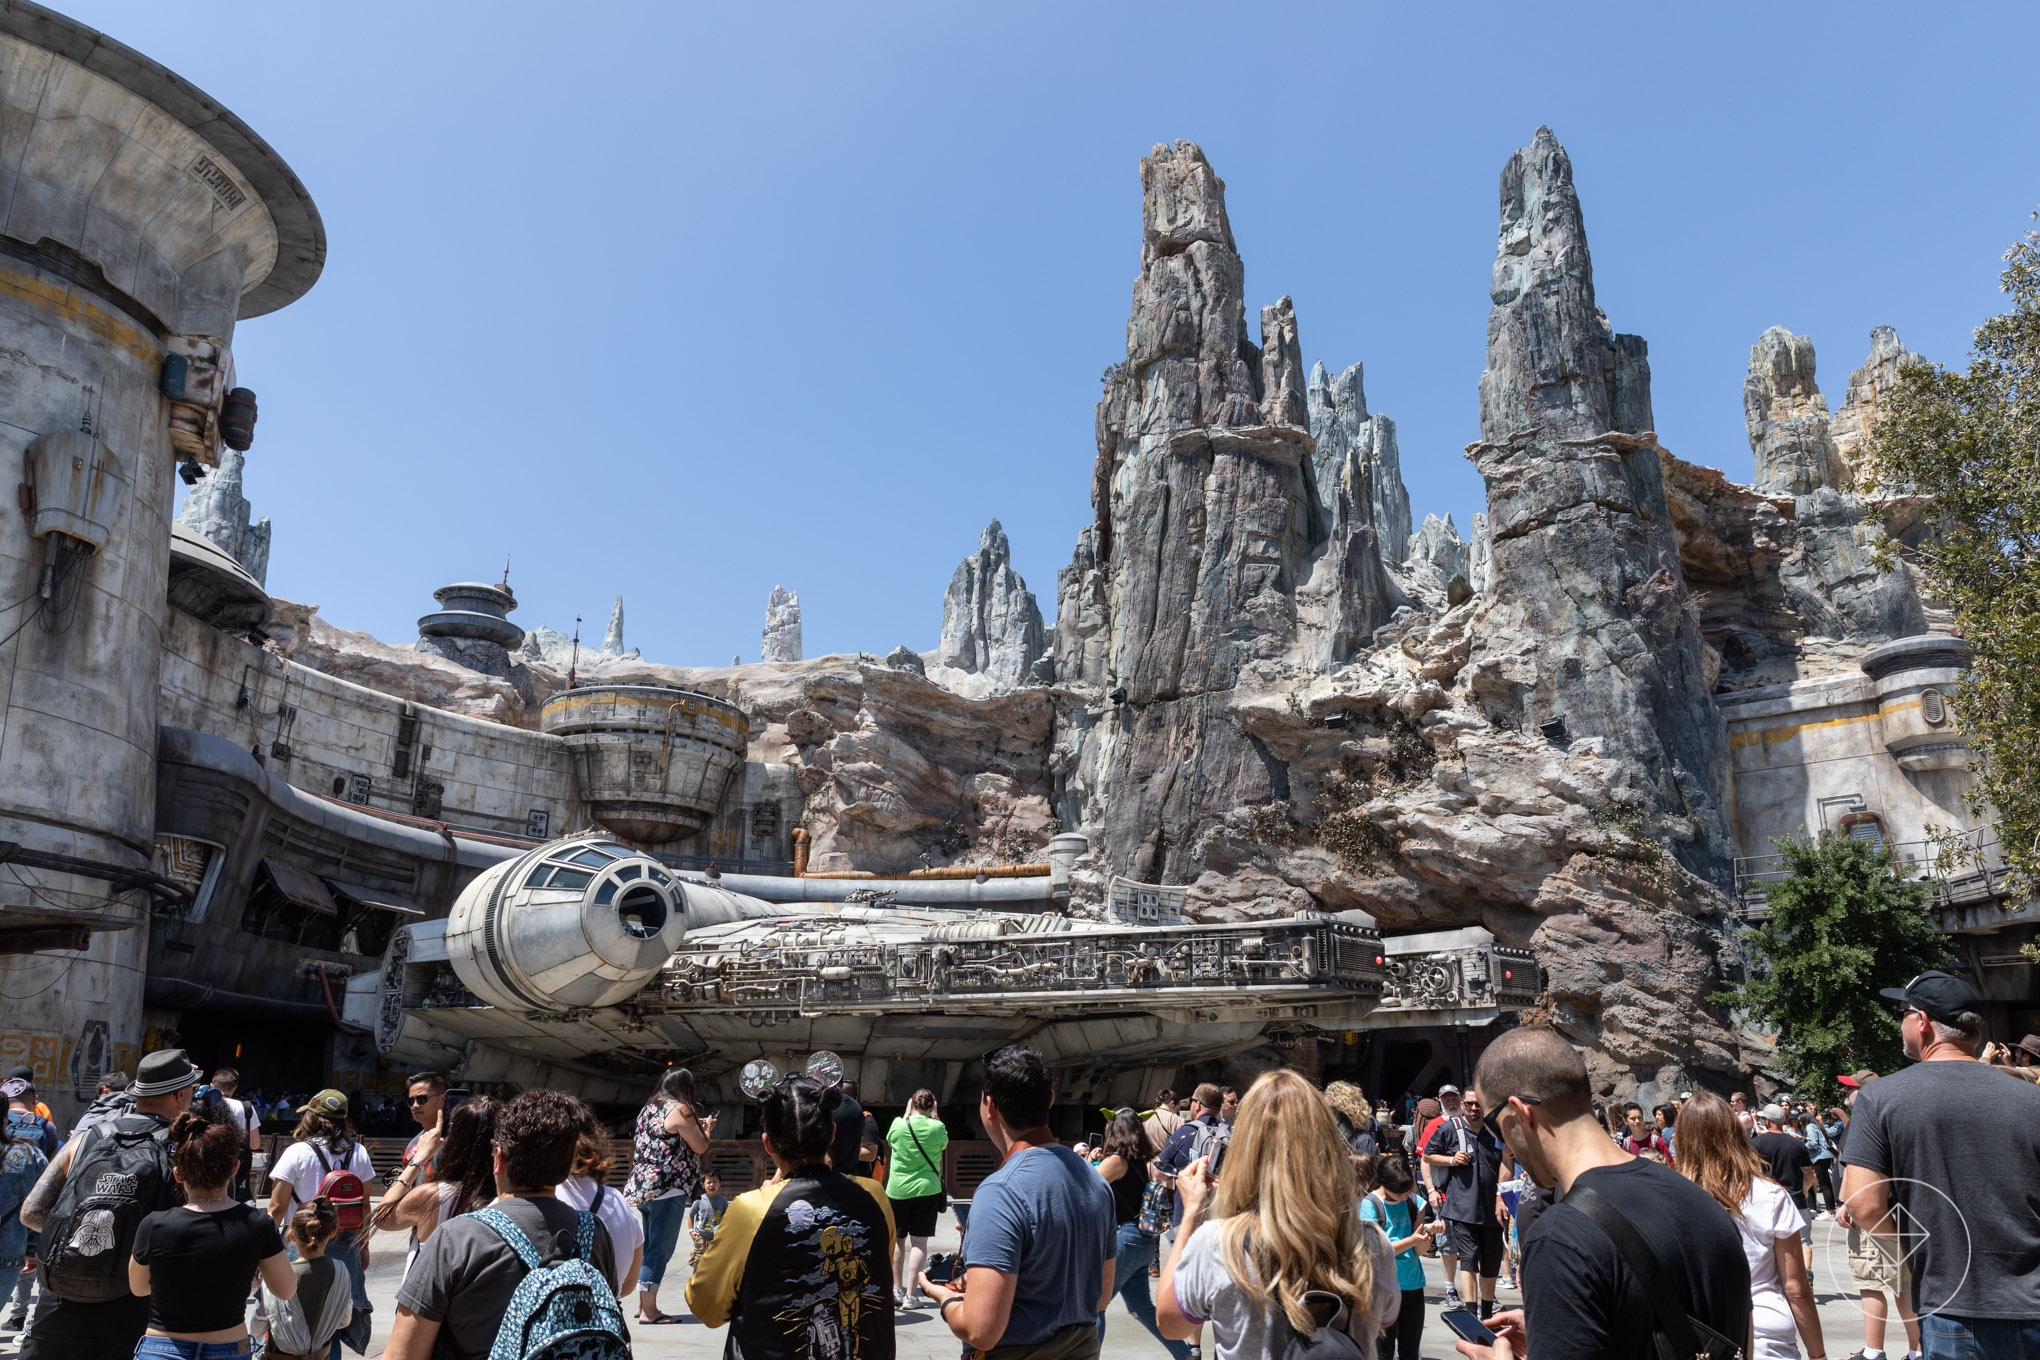 How to enter Disneyland's Galaxy's Edge without reservations